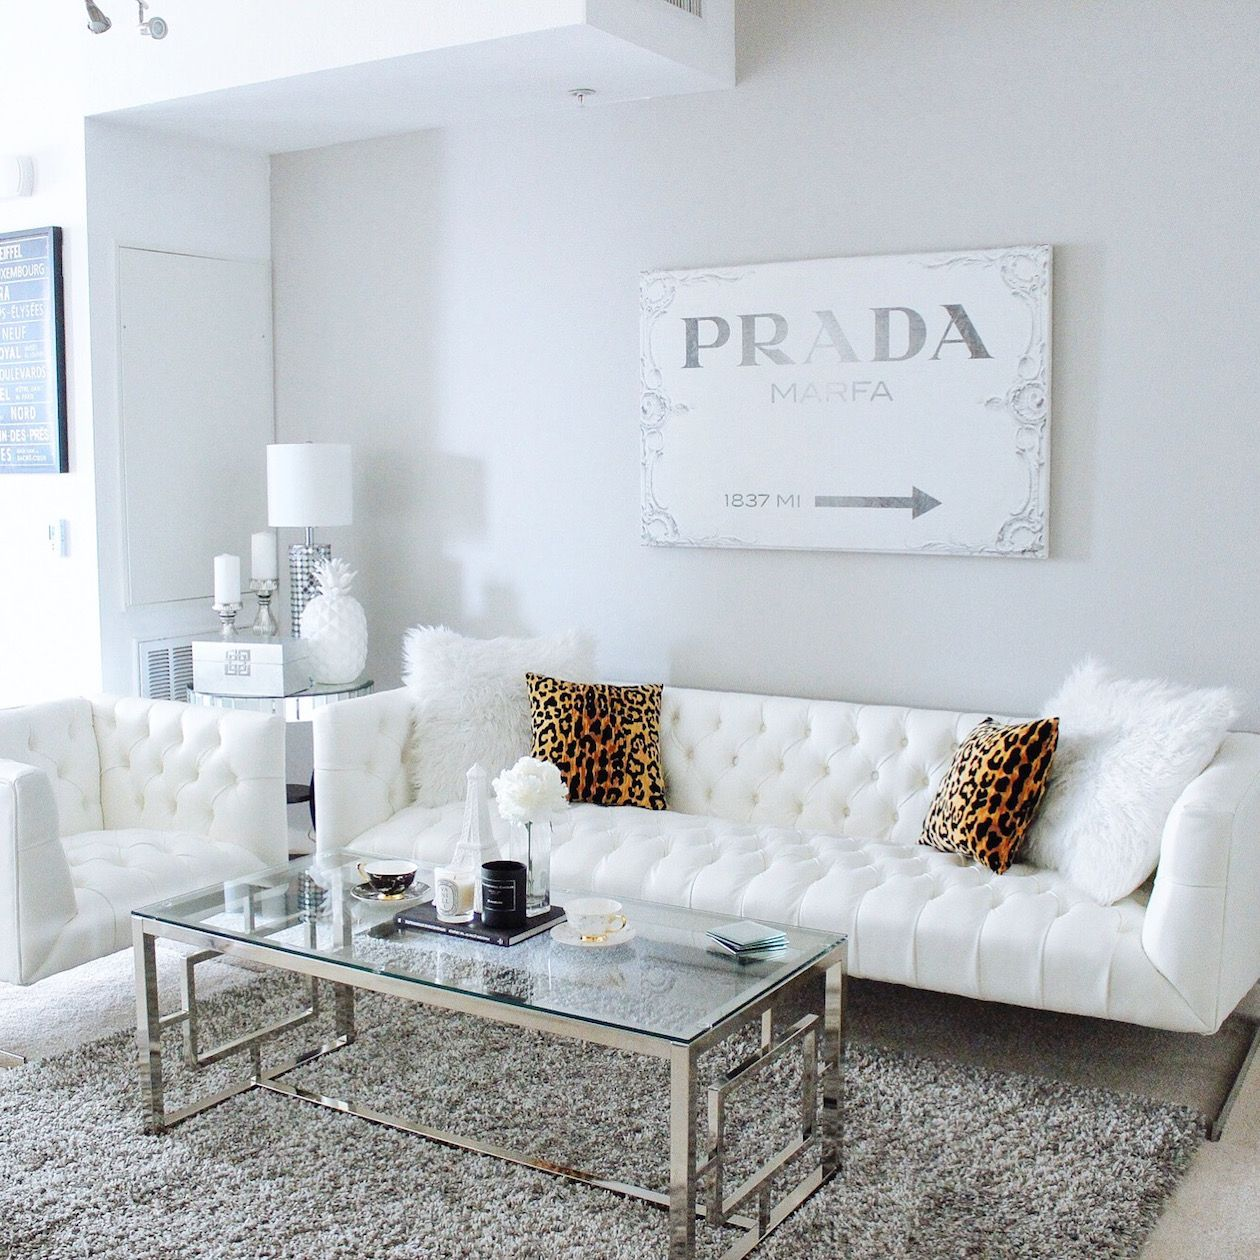 White Living Room Decorating Gray White Living Room Decor White Tufted Sofa Prada Canvas